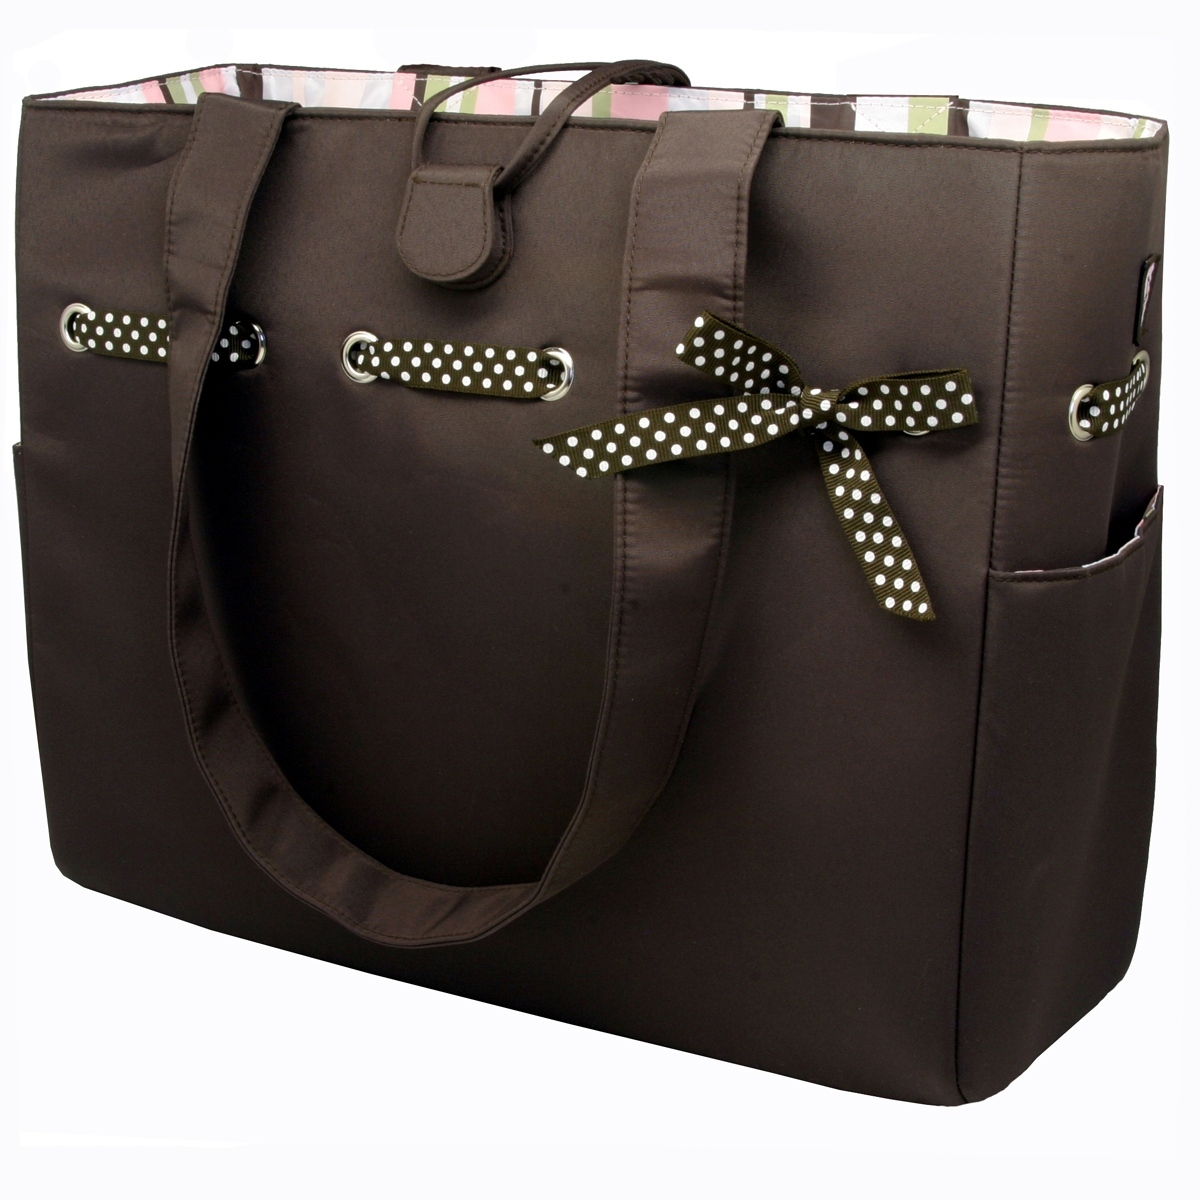 best designer nappy bags vtjz  Mocha Mint Tote from JP LizzyMocha Mint Tote/Diaper Bag by JP Lizzy Comes  with a matching changing pad, coin purse/keychain and makeup bag